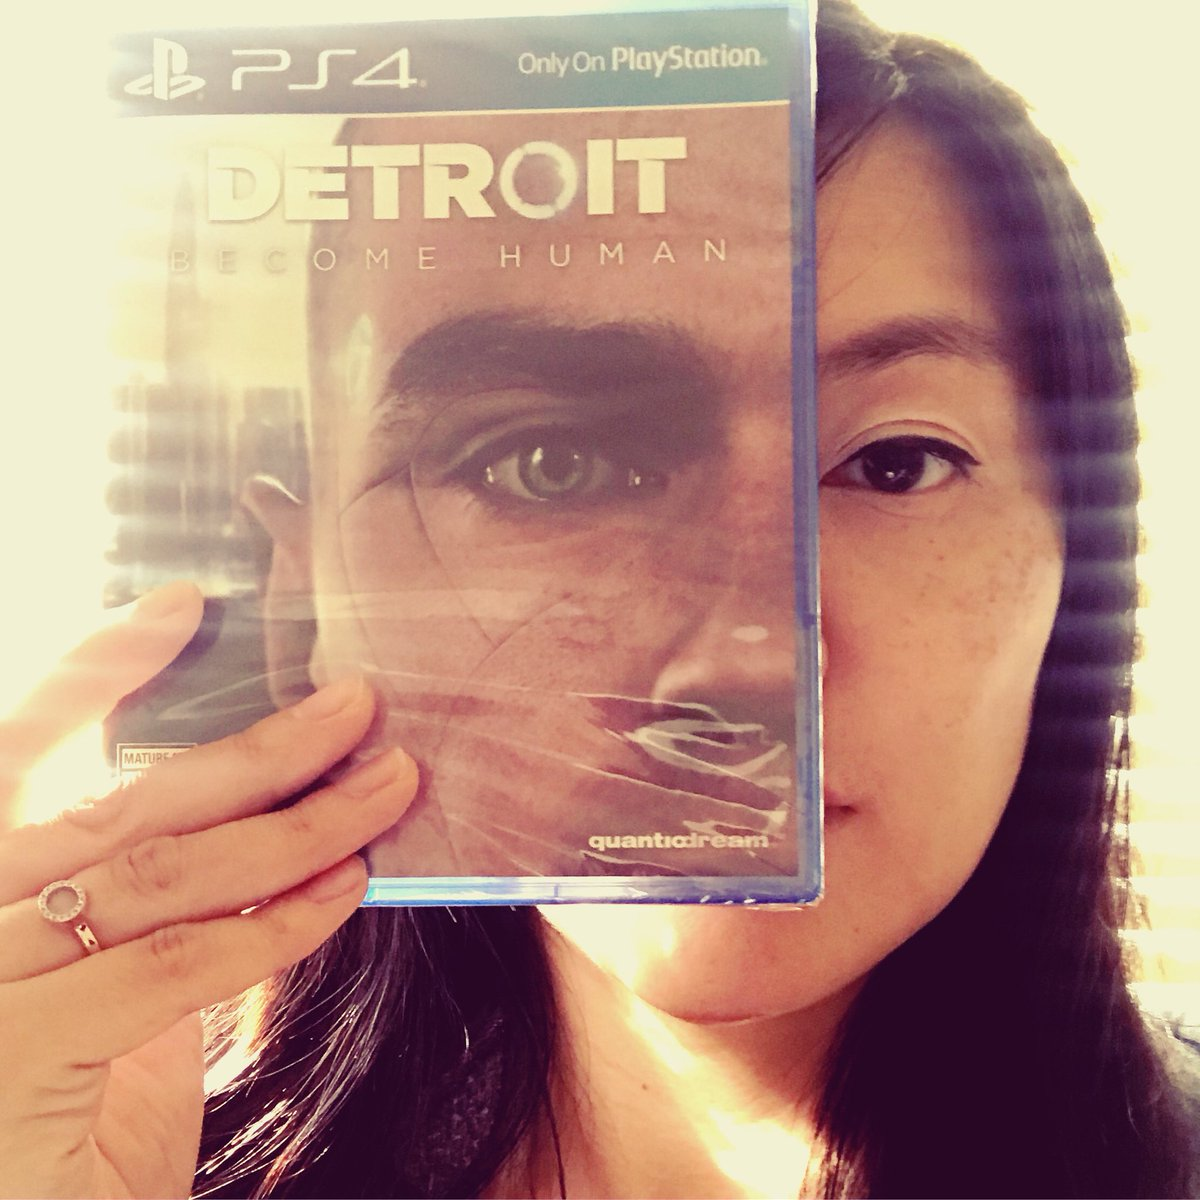 Congrats to David, @GdeFondaumiere @m00tm00t @BryanDechart and the amazing team @Quantic_Dream @PlayStation who continue to evolve what's possible in video games! Can't wait to dive in finally! #detroit #playstationfamily #thegamemakers #storyingames #gamedev